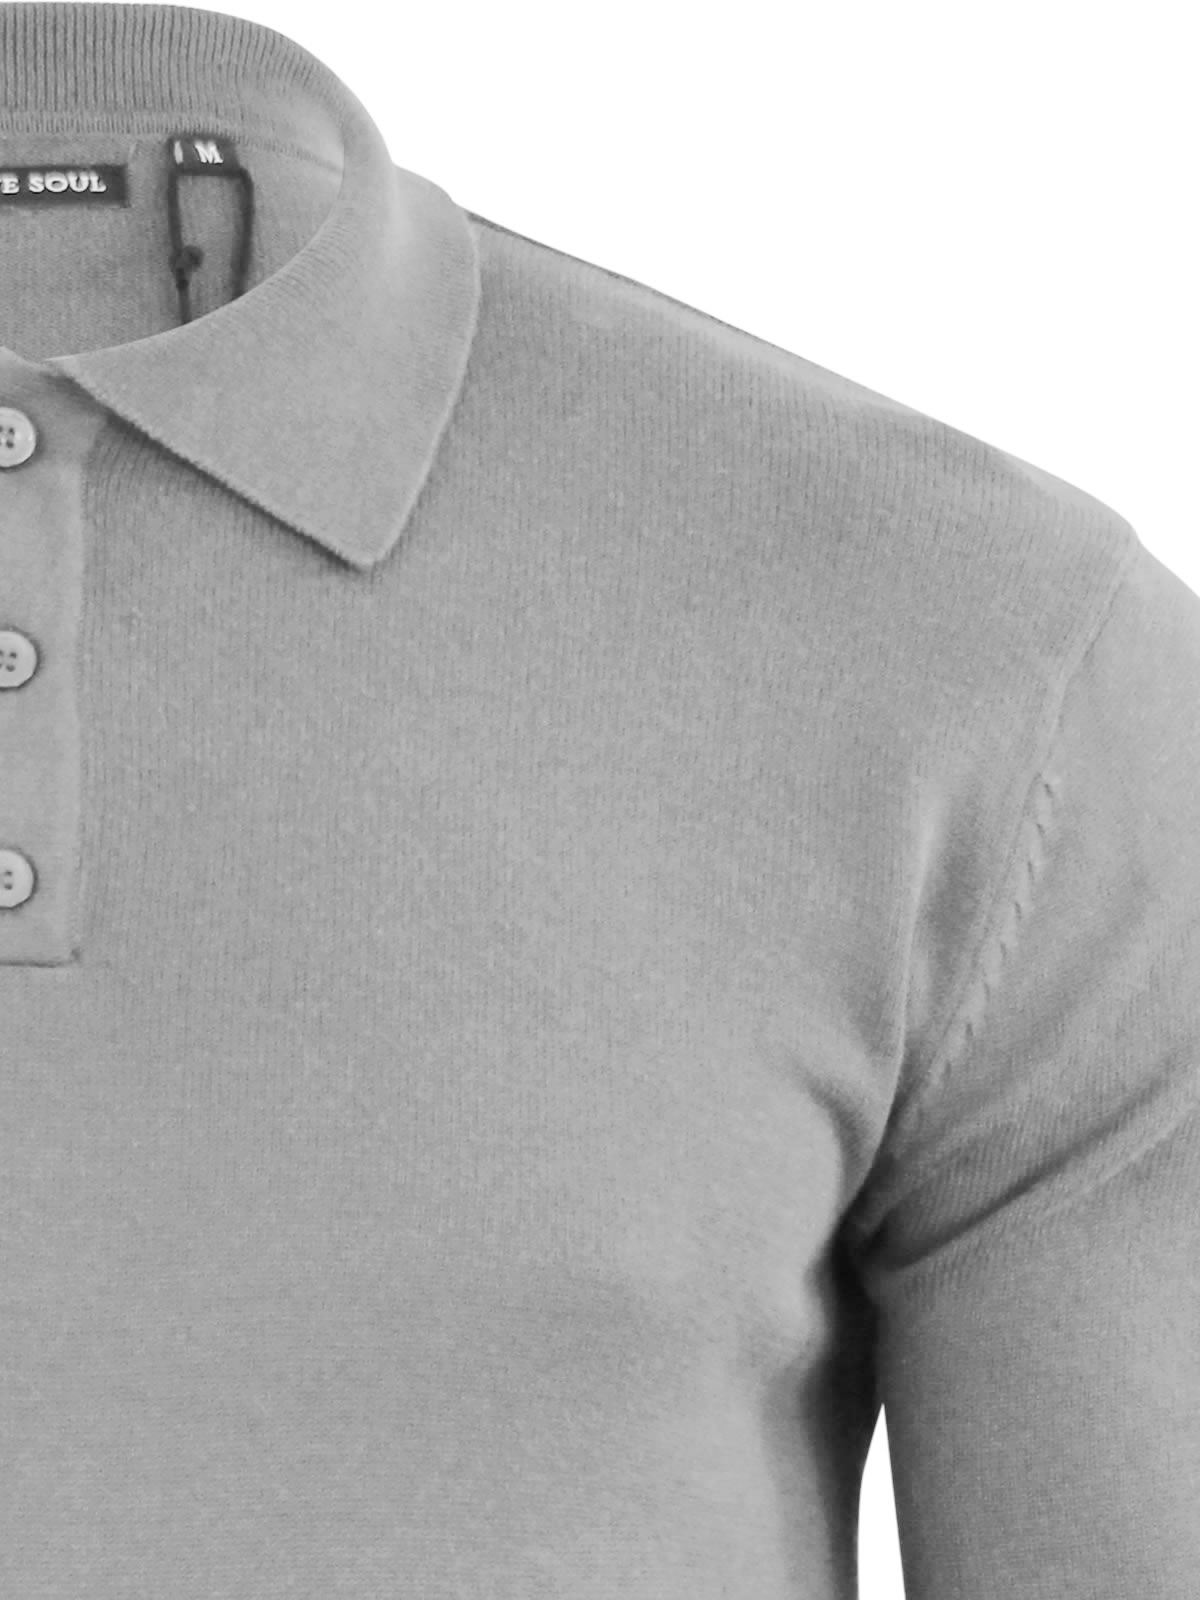 Mens-Knitted-Polo-T-Shirt-Brave-Soul-Placket-Collared-Jumper thumbnail 25